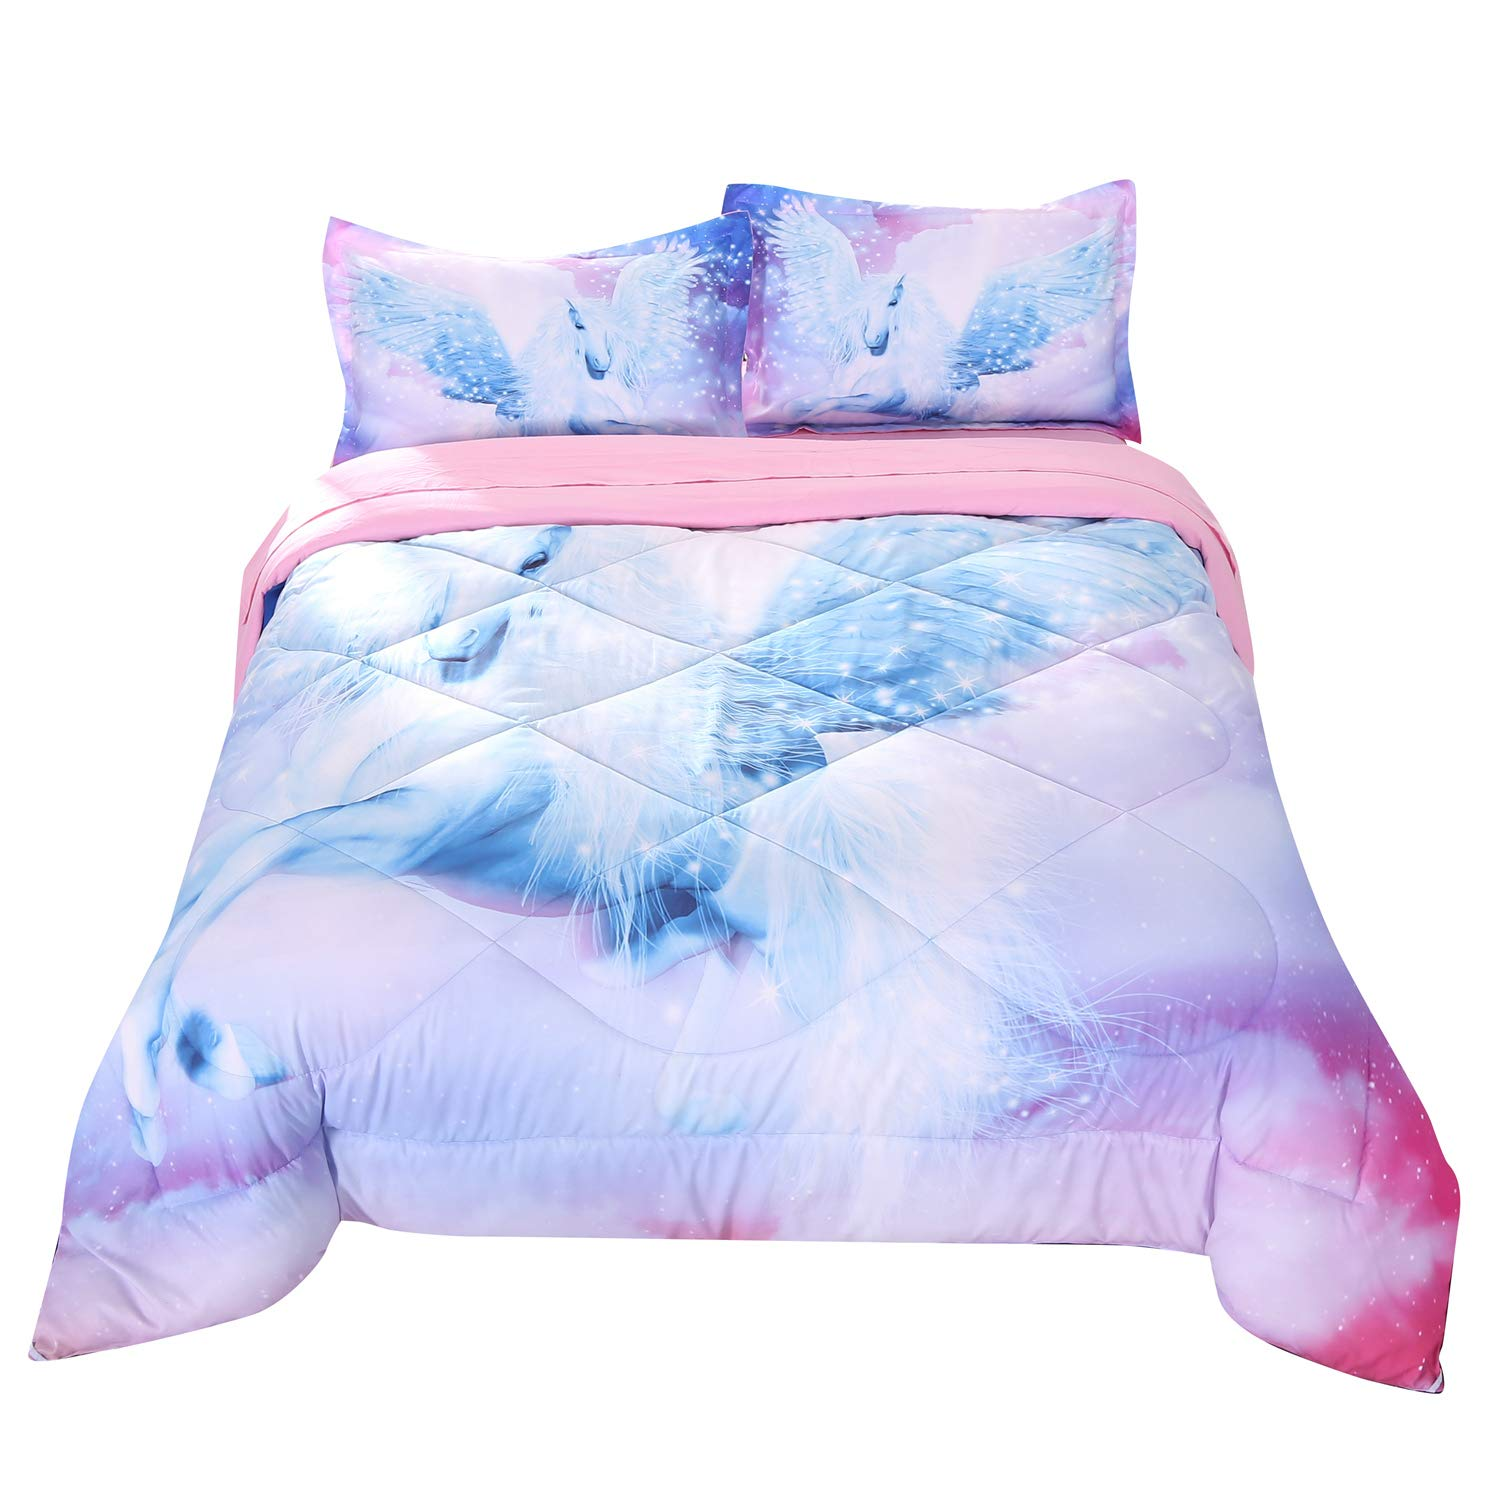 Flat Sheet Green Unicorn, Twin Fitted Sheet and 2 Pillow Cases for Teens Wowelife 3D Twin Fly Unicorn Comforter Sets 5 Piece Girl Bedding Set Unicorn Green Bedspreads with Comforter